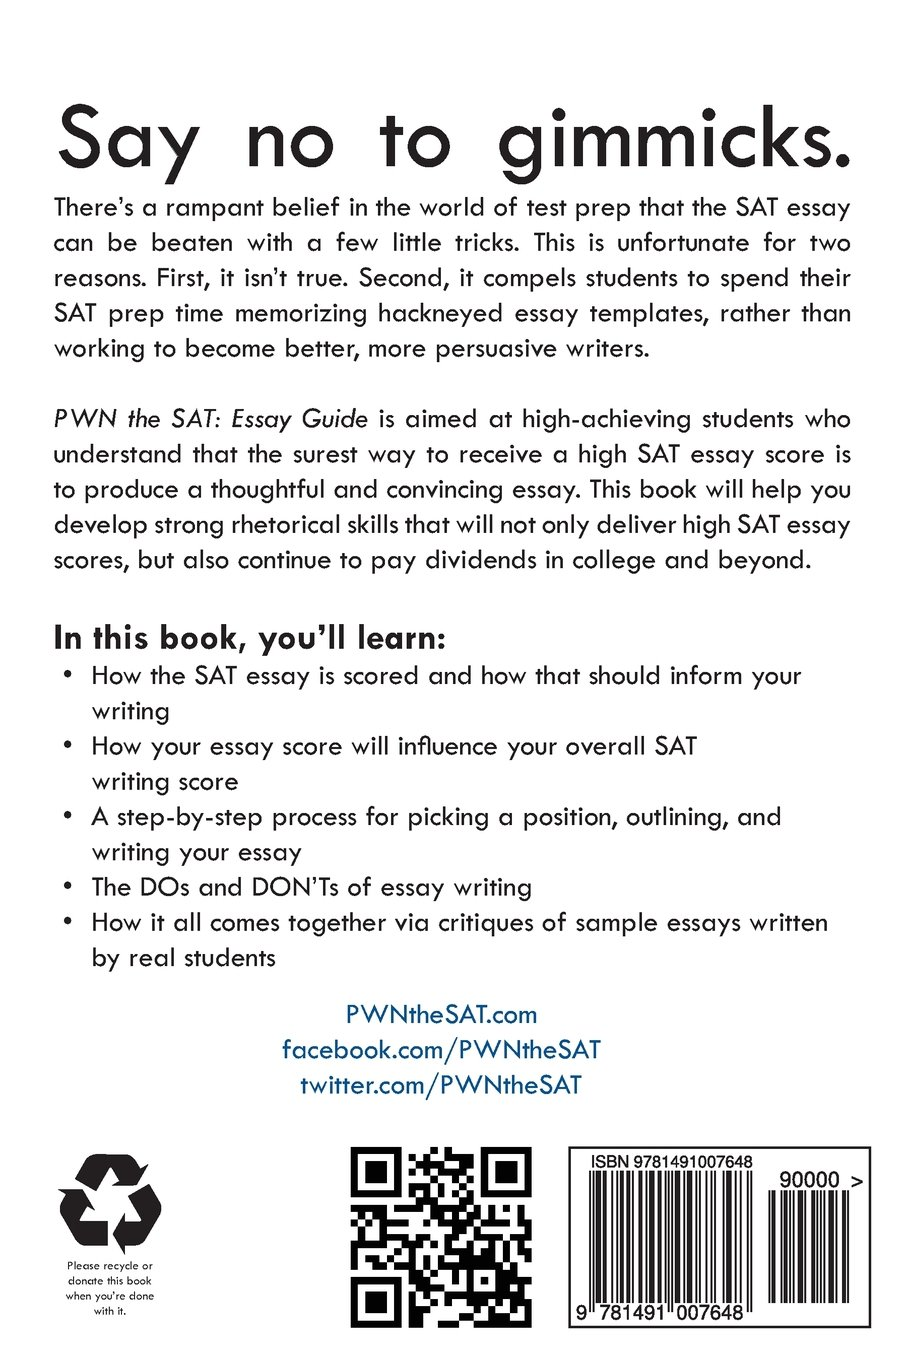 009 Sat Essay 712bcqjf85sl Rare Writing Tips Pdf Topics Average Score For Ivy League Full